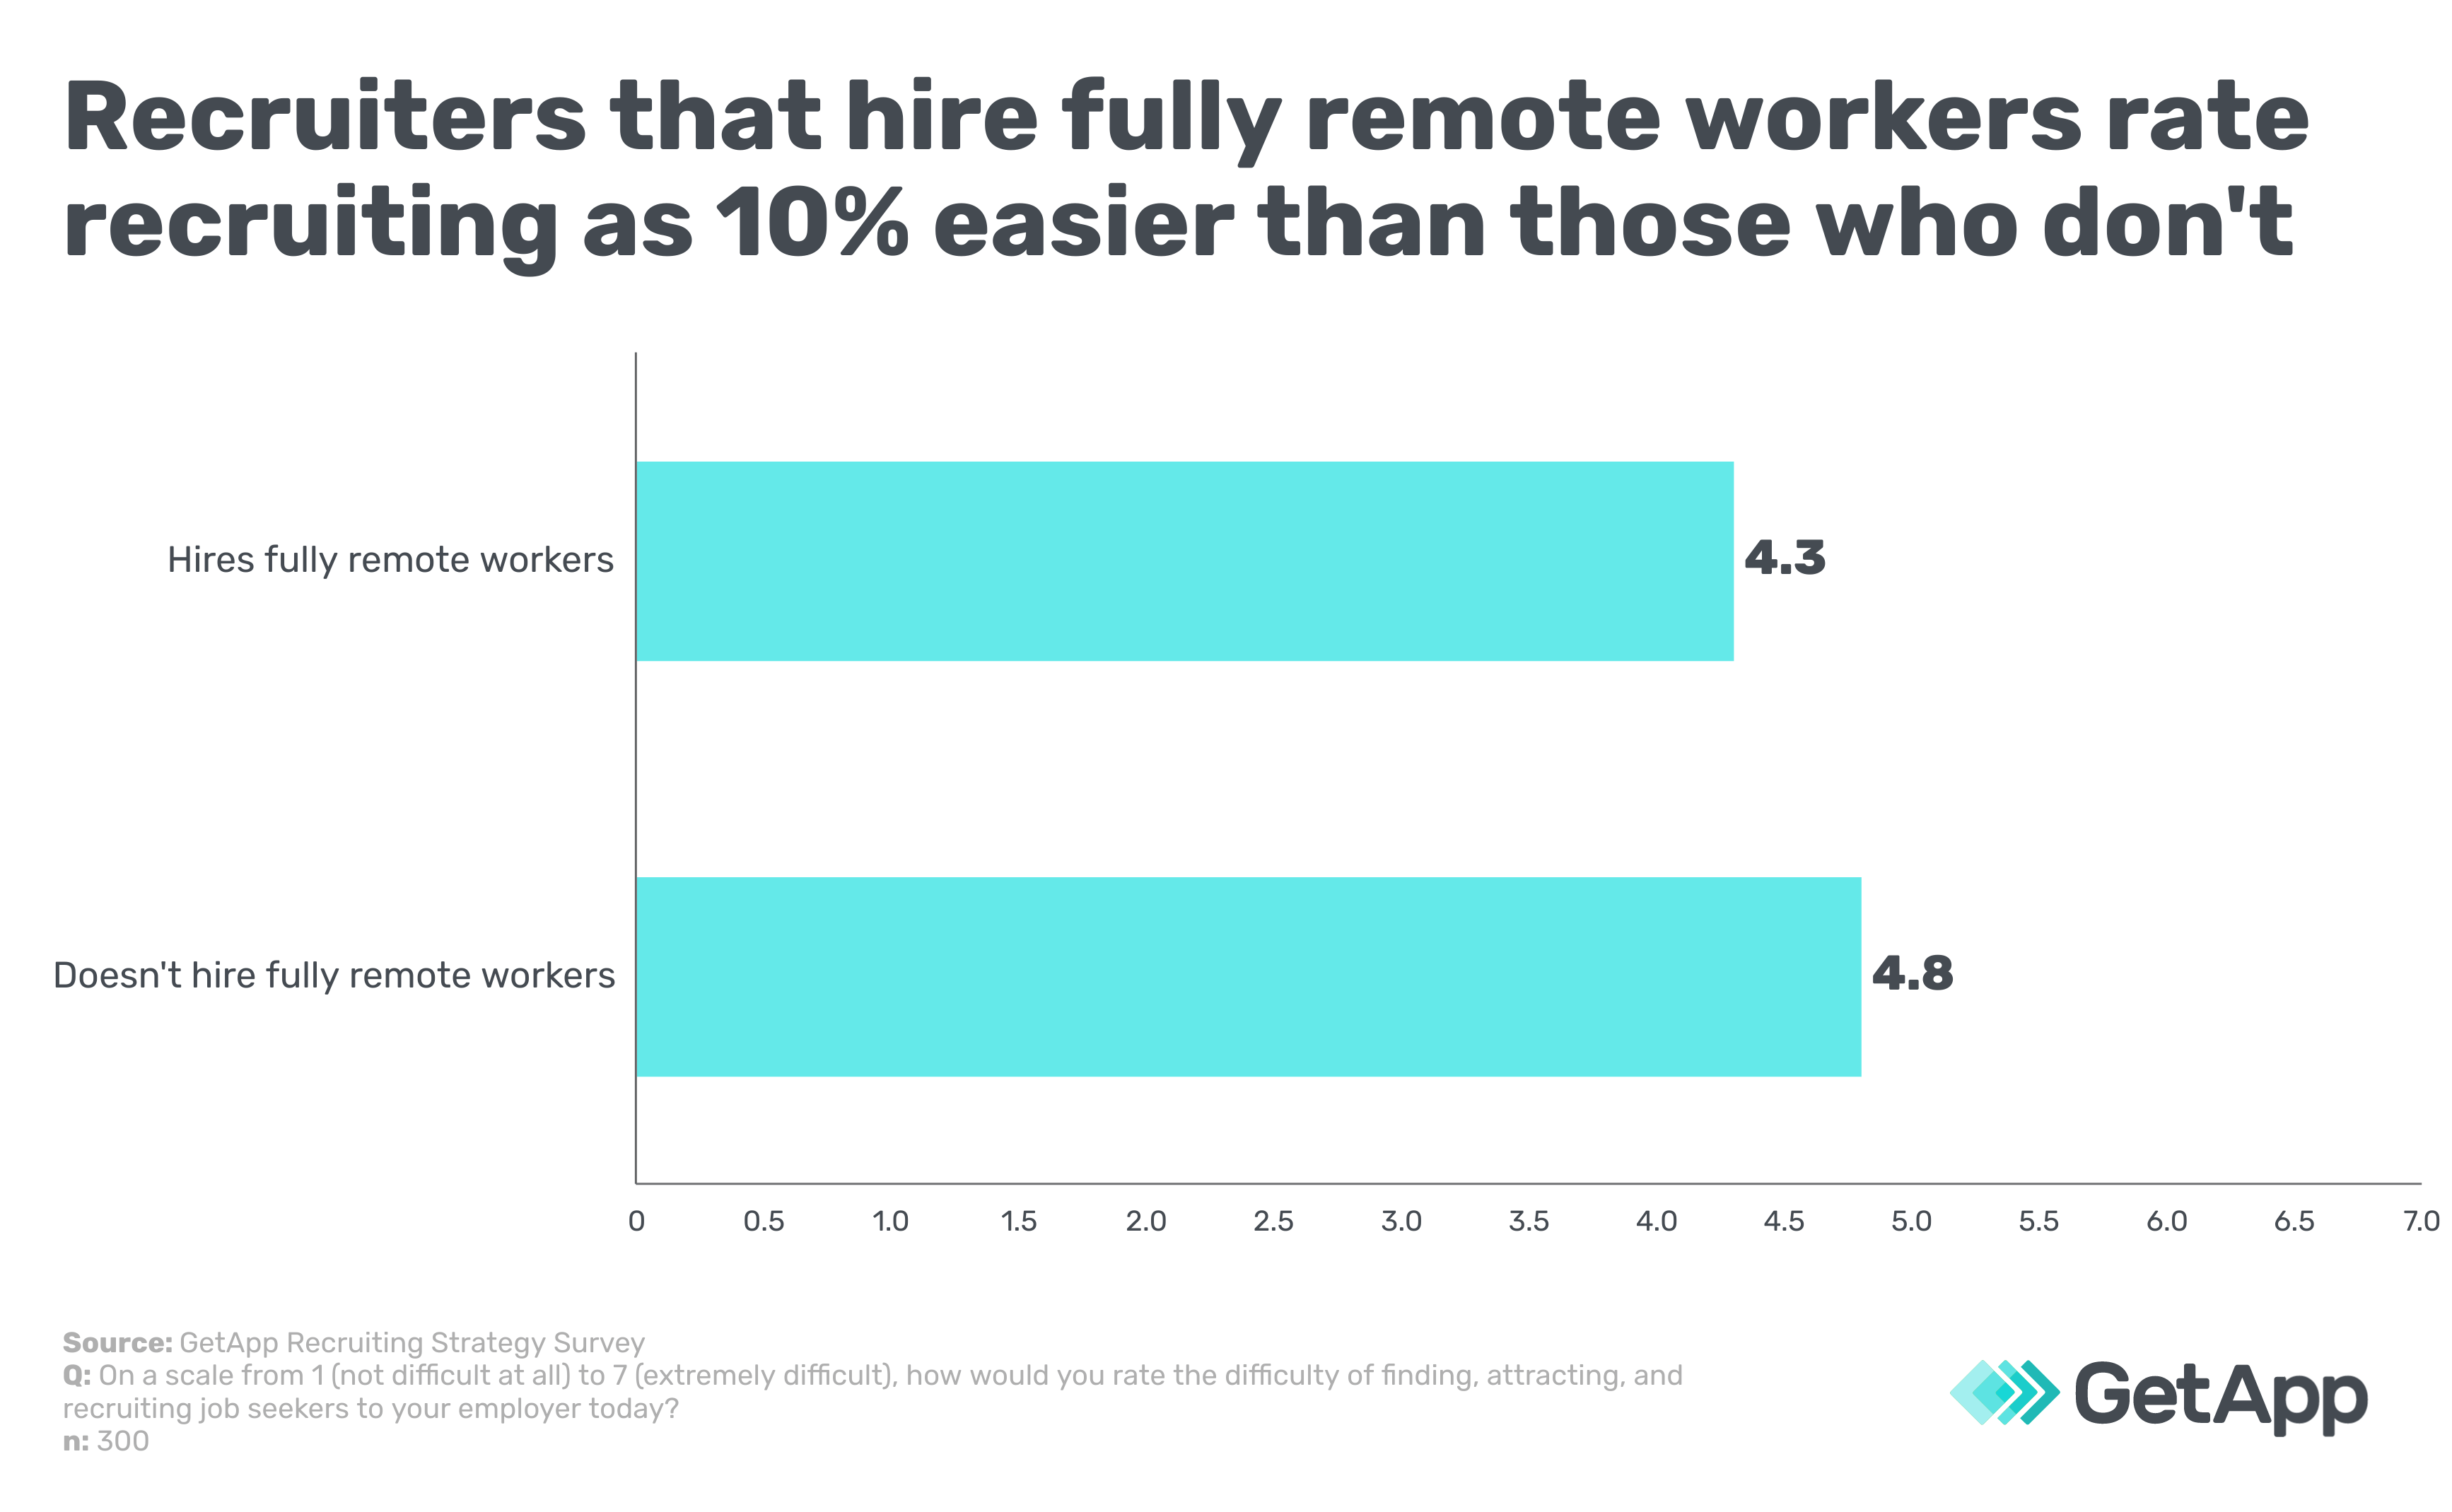 Recruiters that hire fully remote workers rate recruiting as 10% easier than those who don't